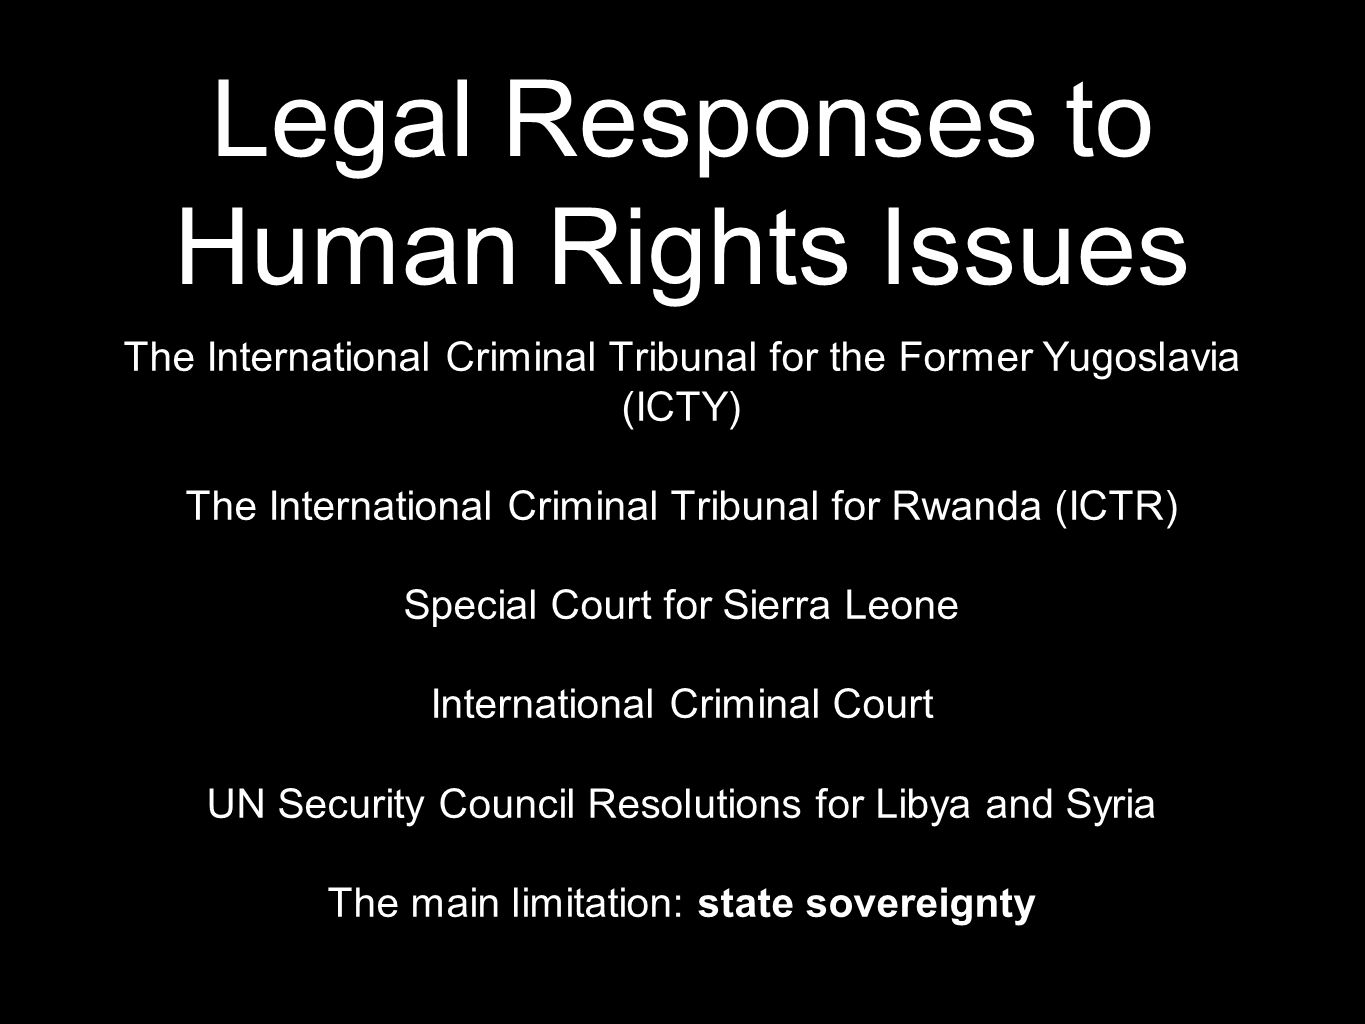 Legal Responses to Human Rights Issues